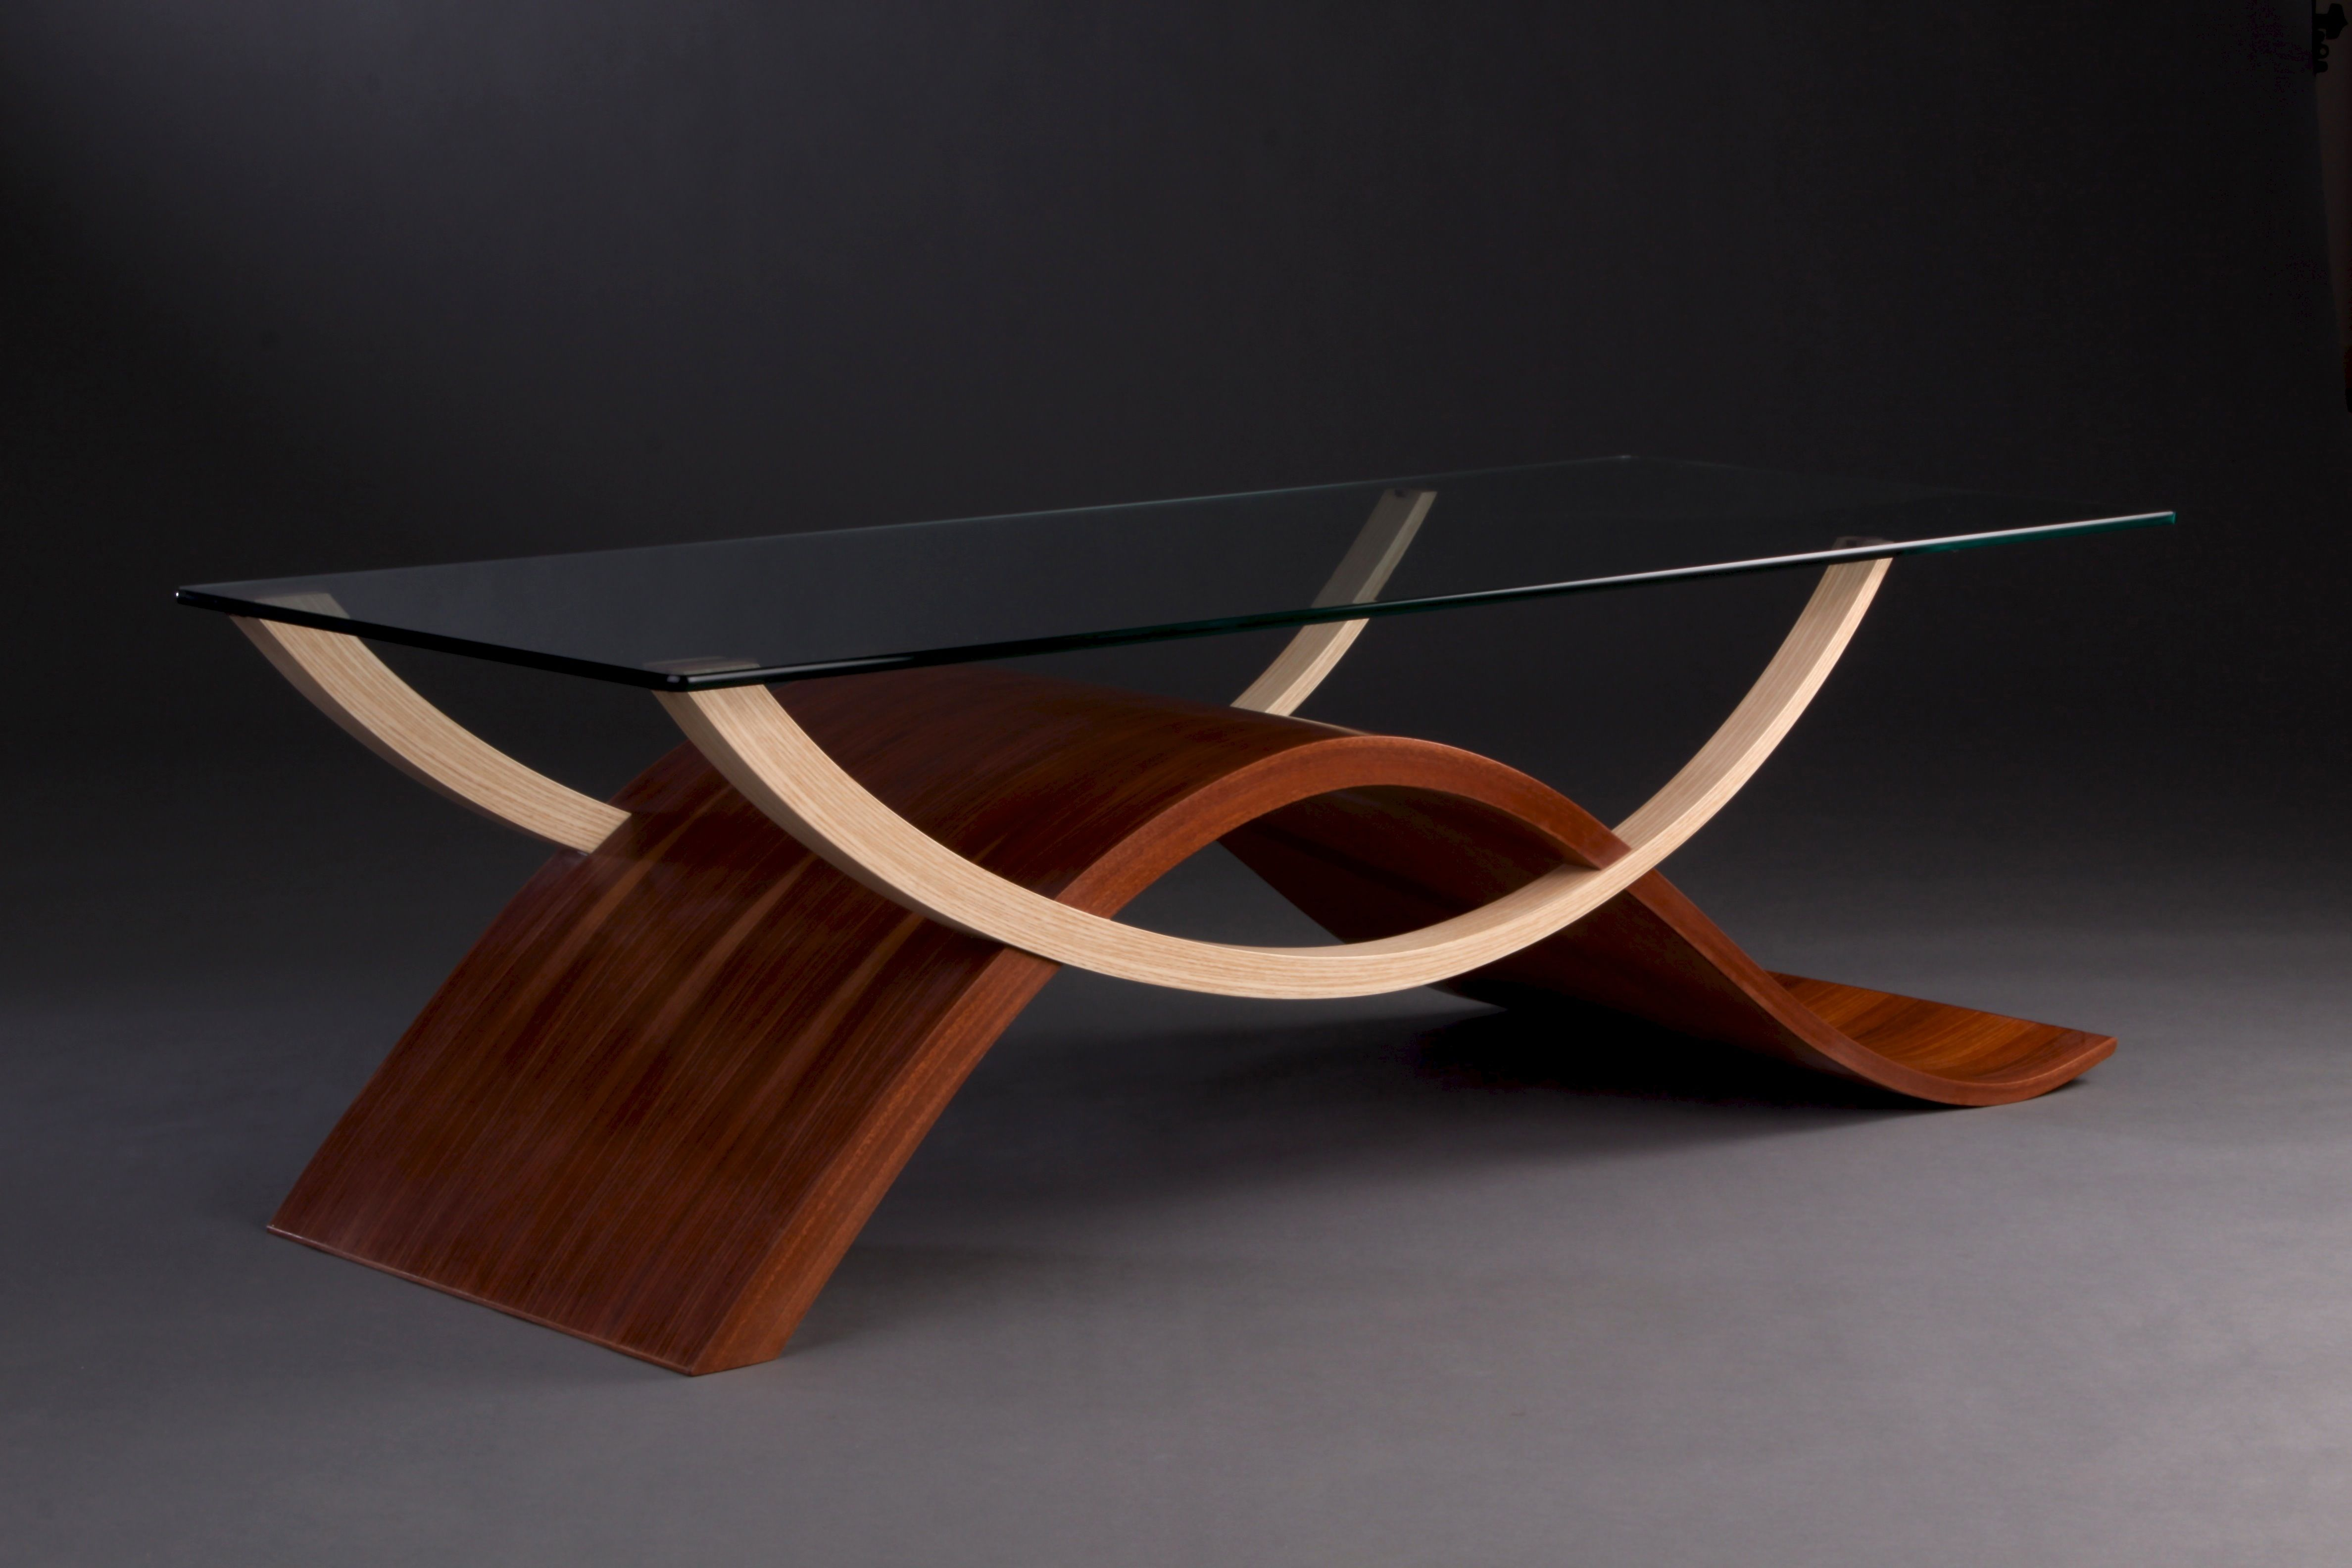 Wave Form Coffee Table Reader S Gallery Fine Woodworking Custom Coffee Table Coffee Table Design Coffee Table [ 3168 x 4752 Pixel ]